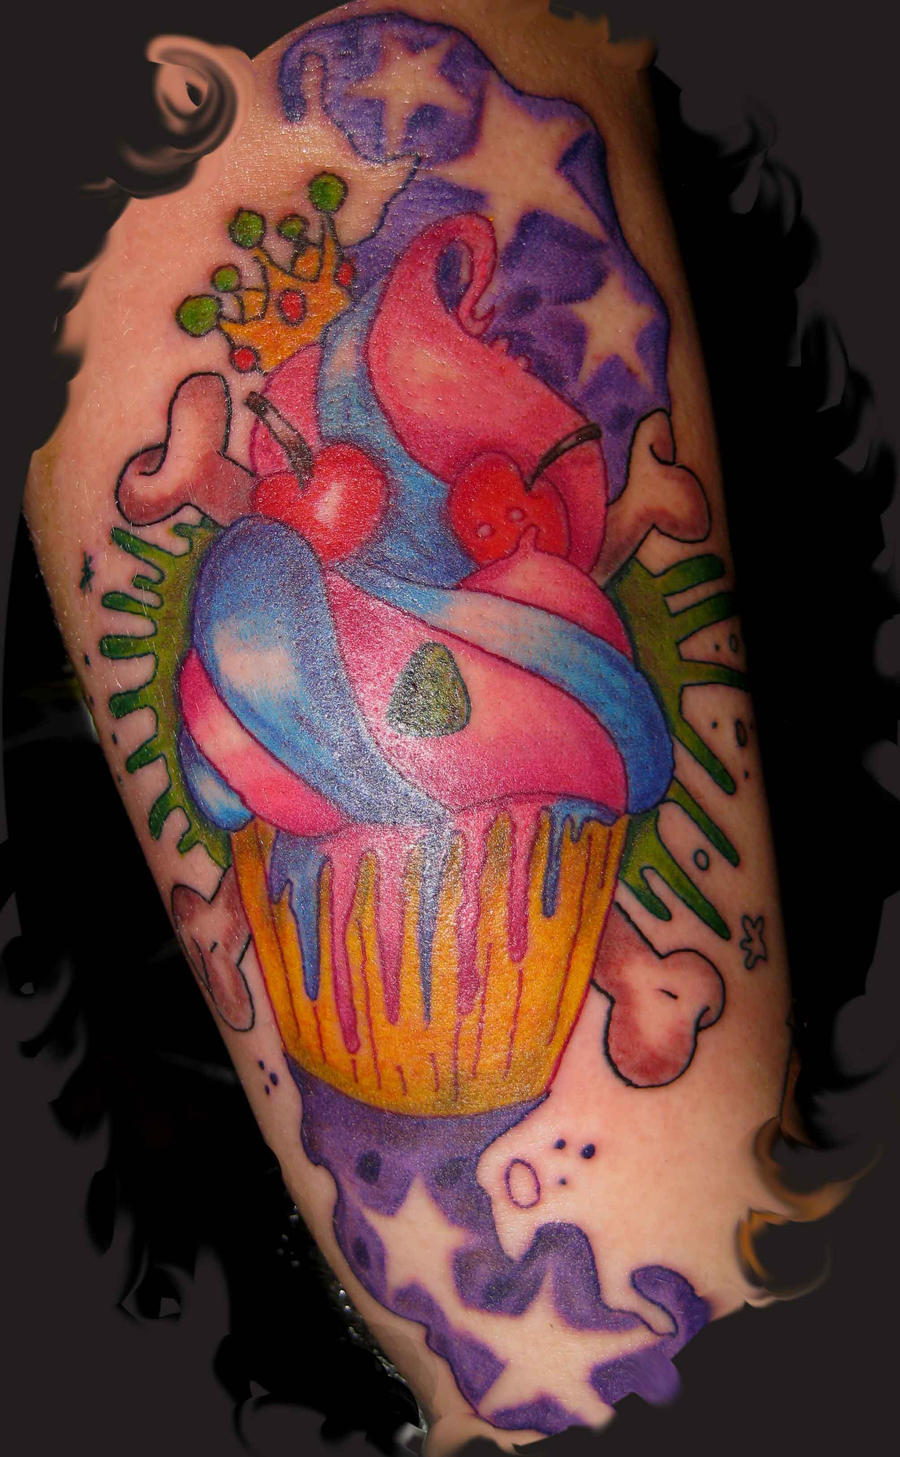 Tattoo Cake Designs